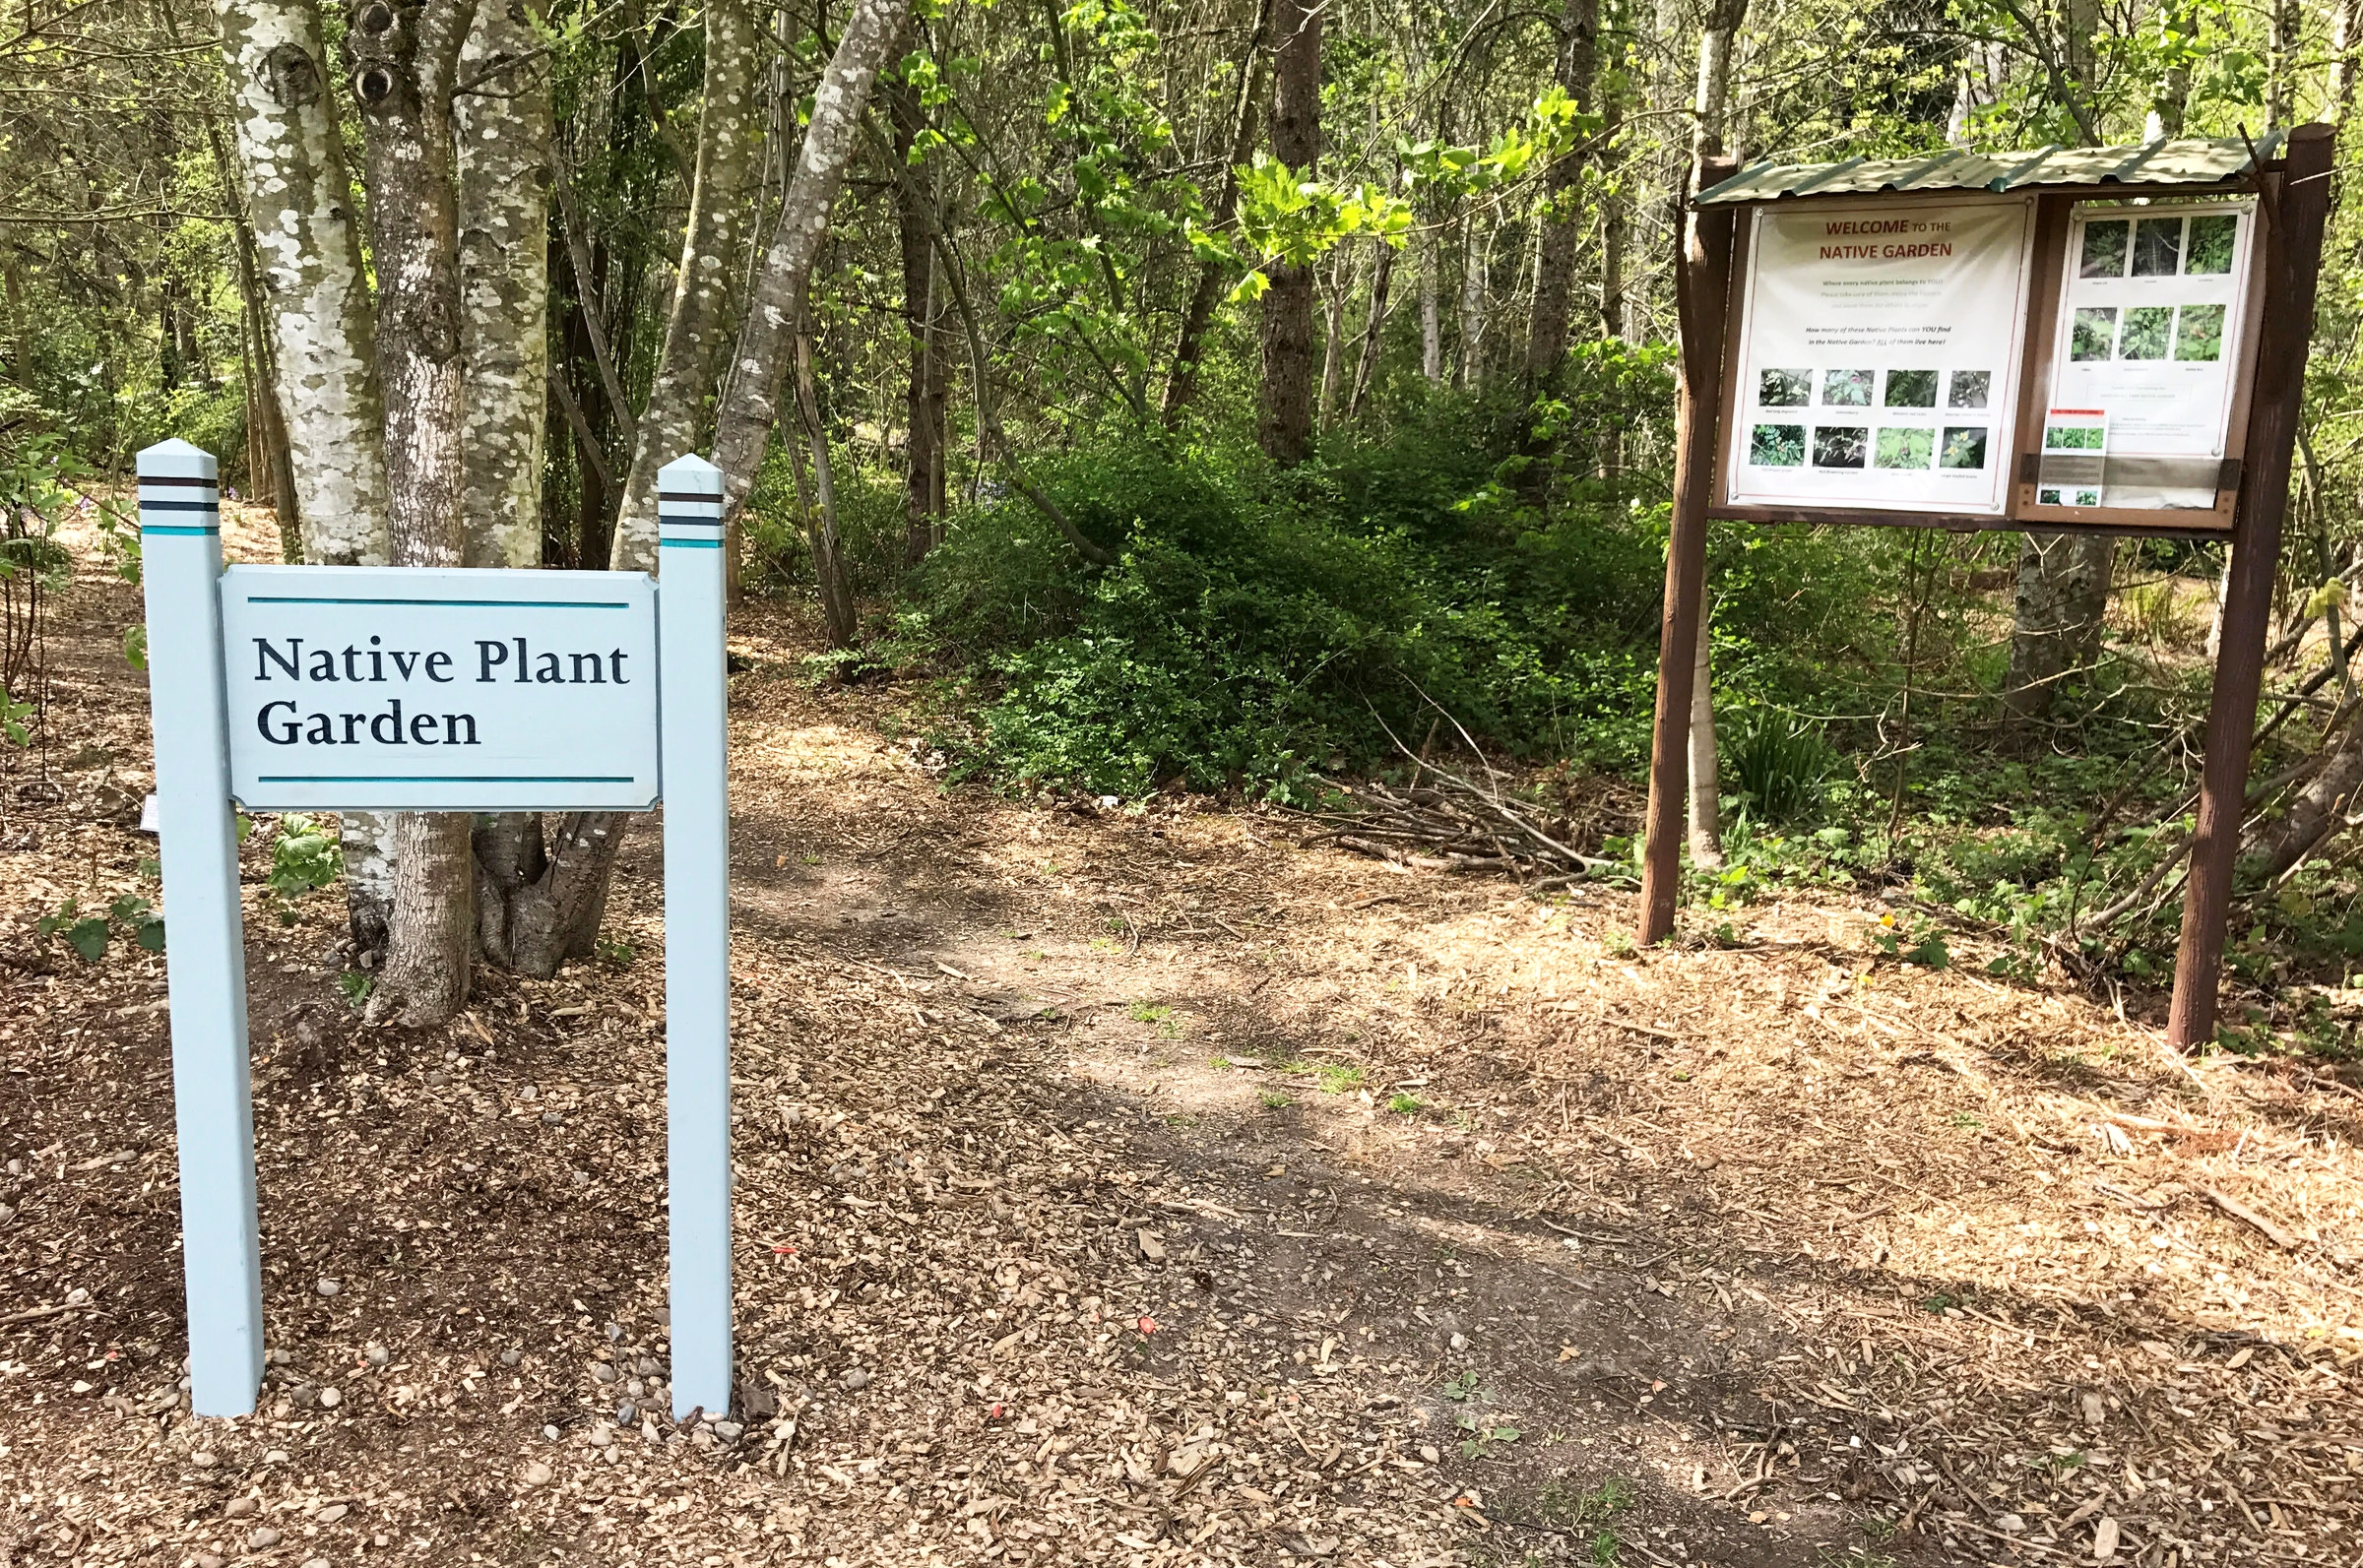 Native Plant Garden sign 4-27-18